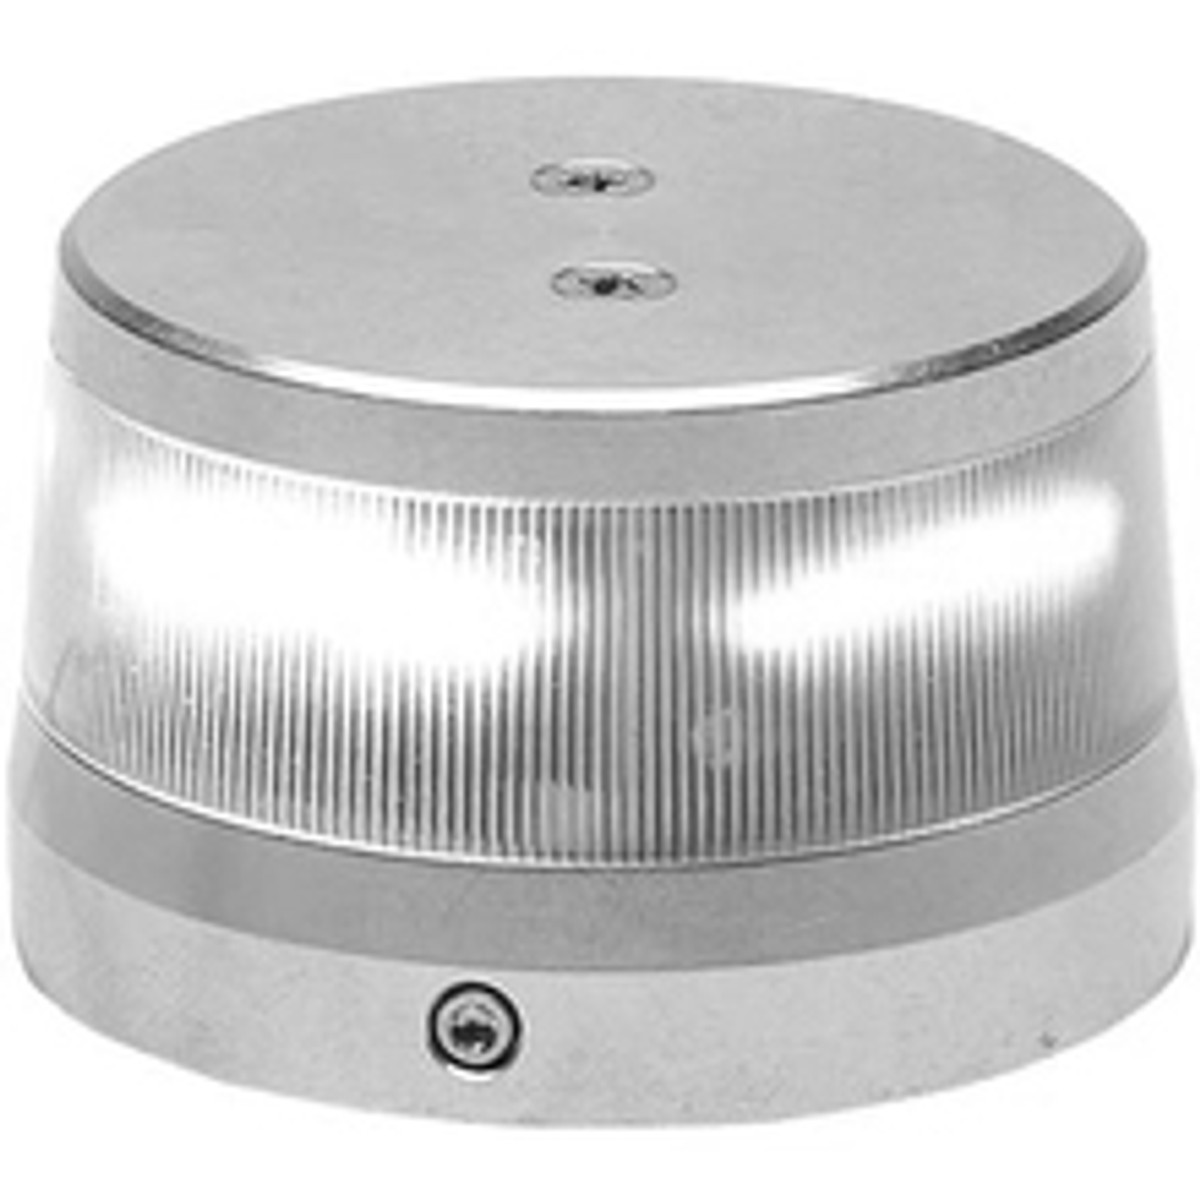 Whelen ORION 360 LED Beacon White Part 01-0772010-20. Model OR36W2N